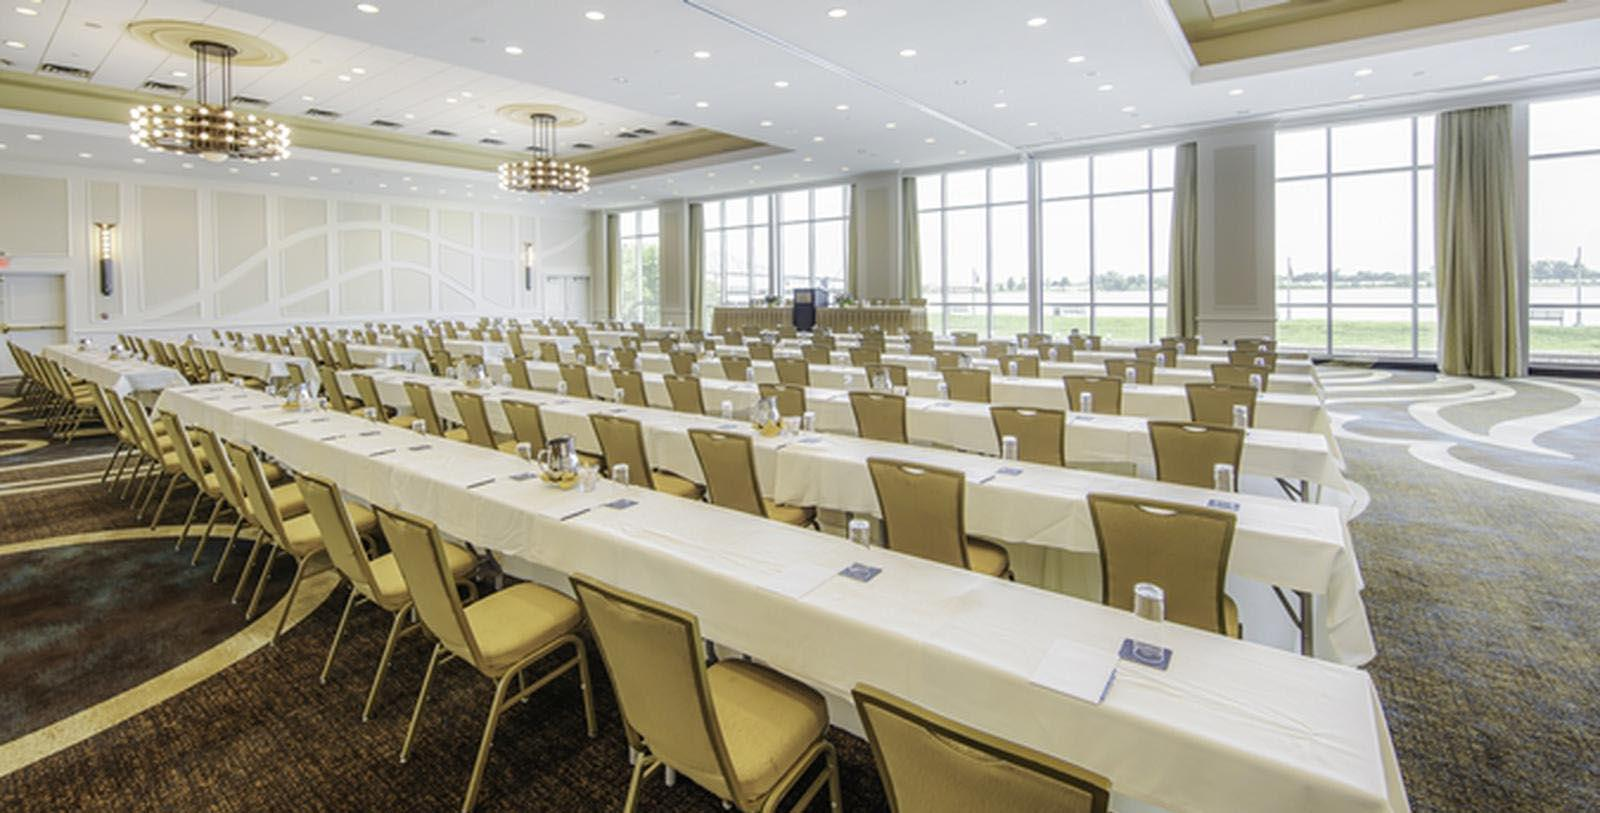 Image of classroom meeting set up Hilton Baton Rouge Capitol Center, 1927, Member of Historic Hotels of America, in Baton Rouge, Louisiana, Experience